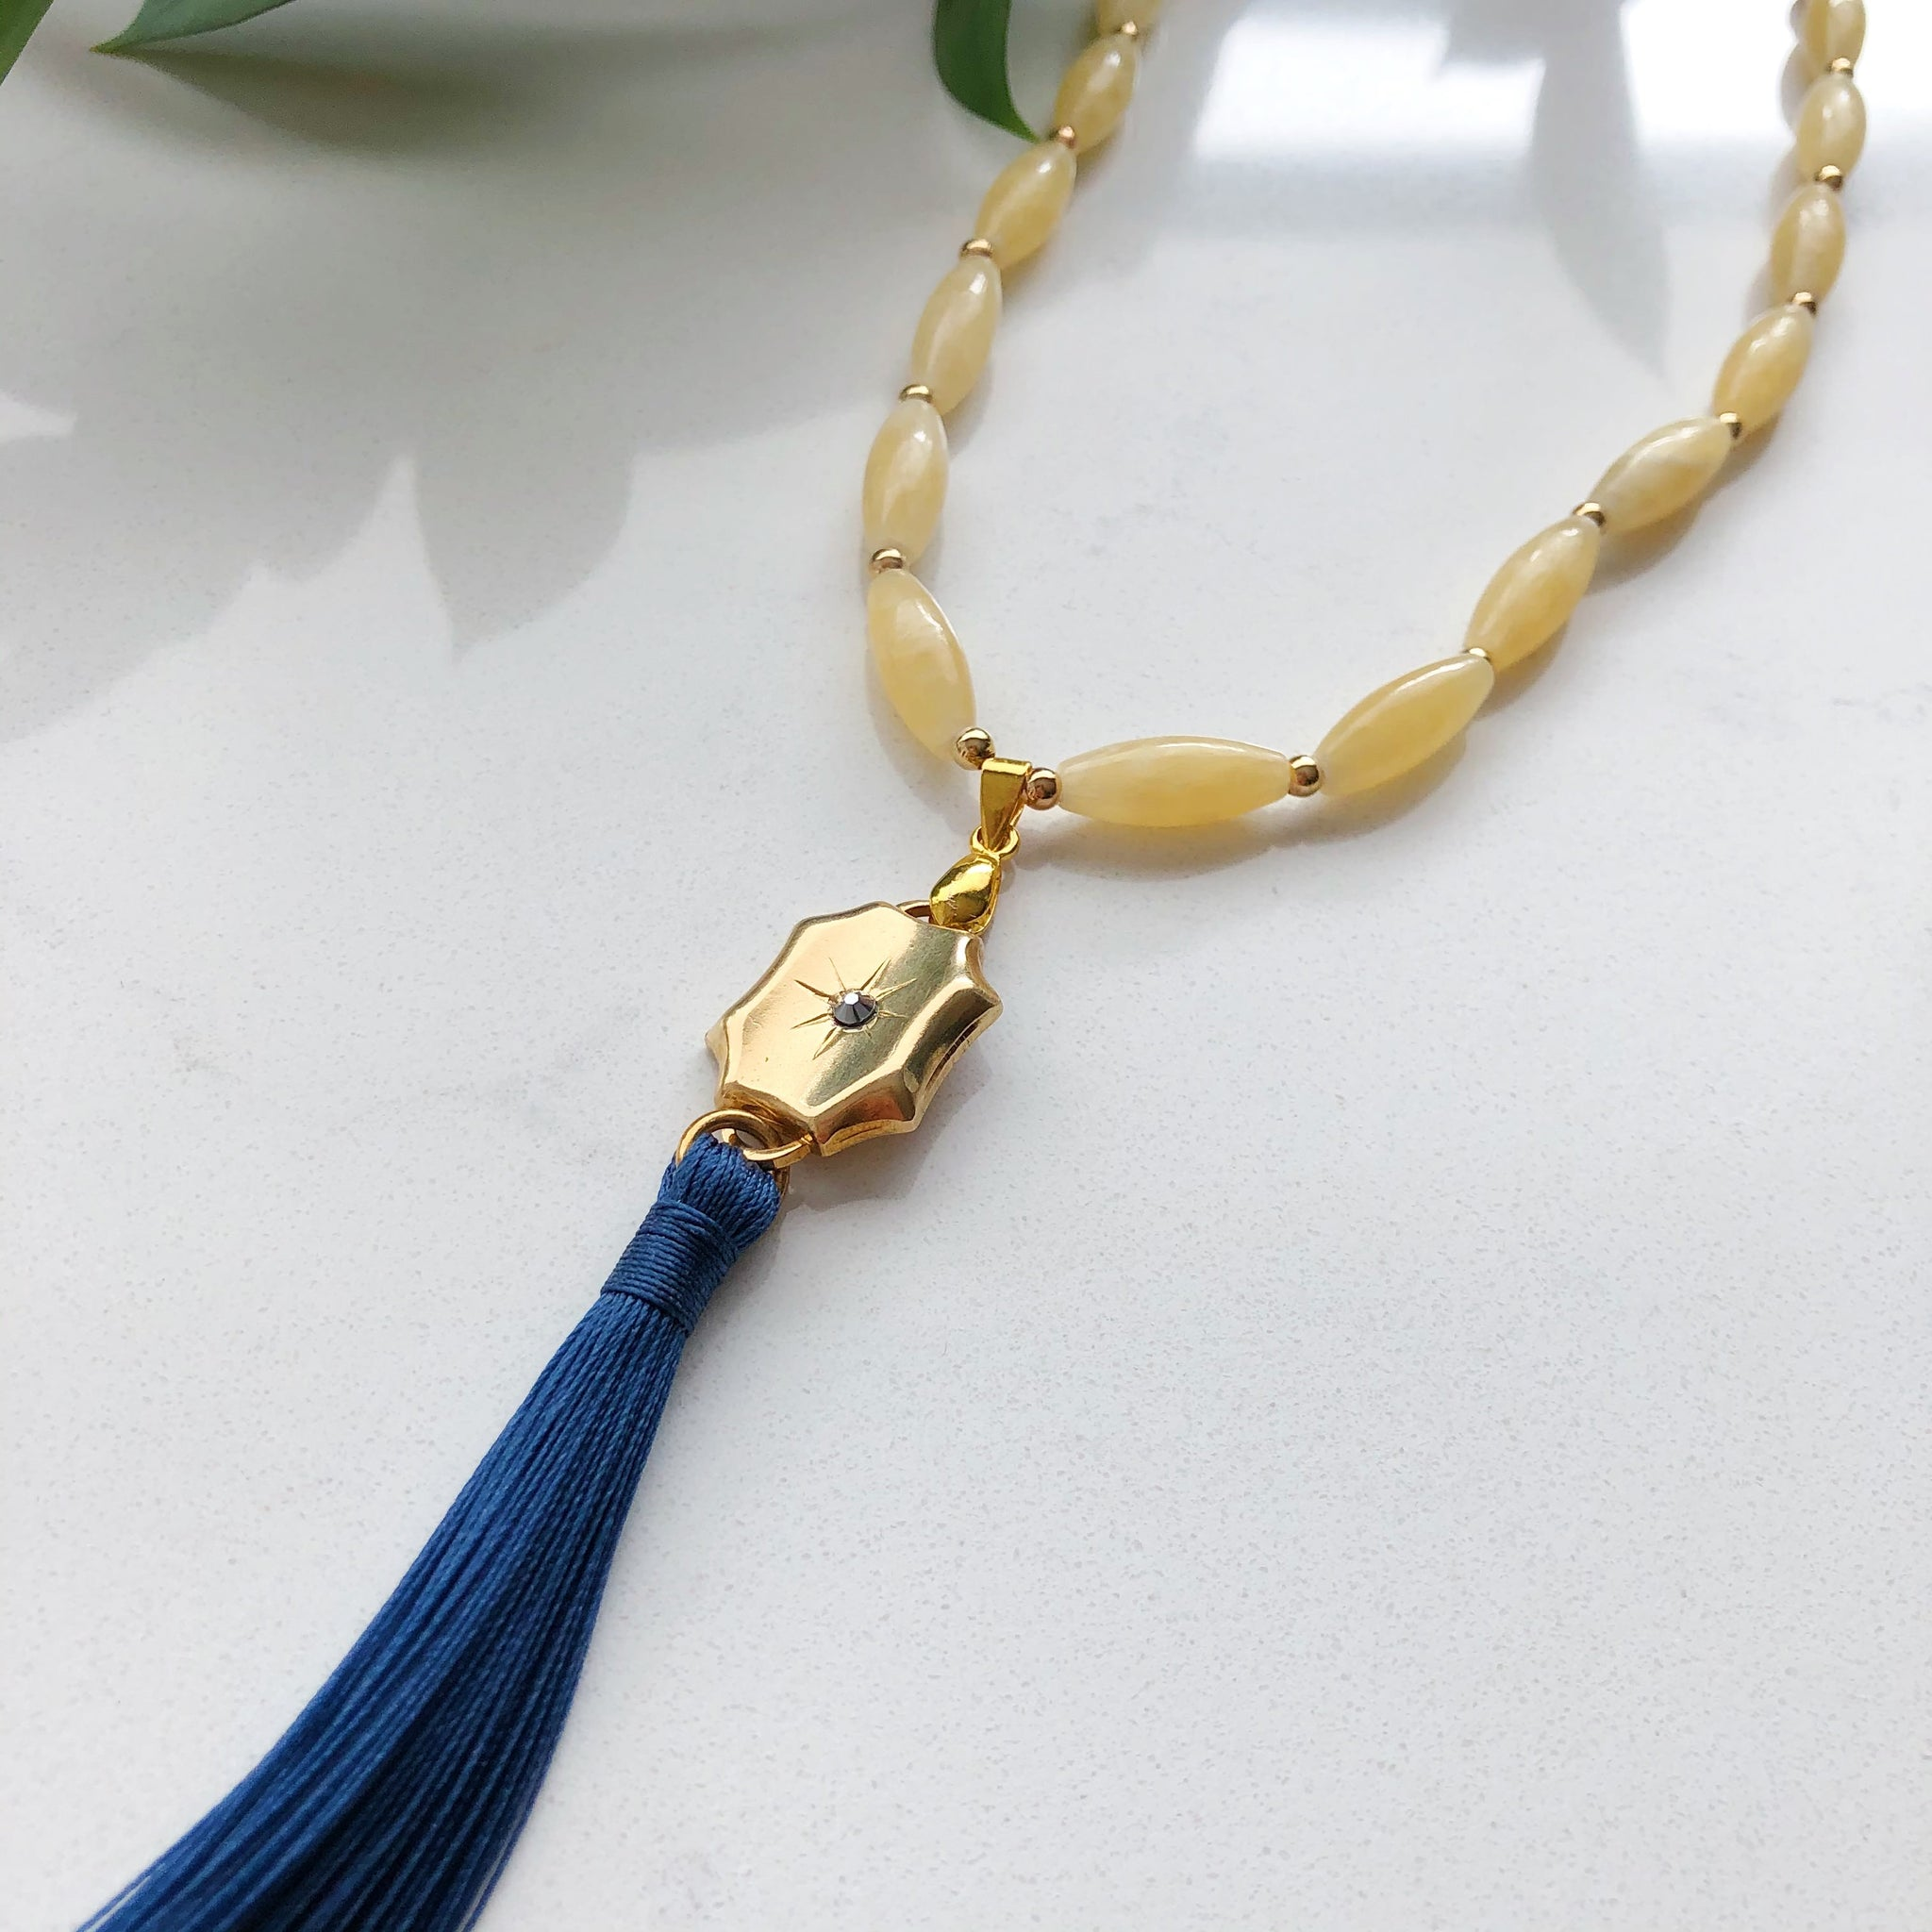 Baroque Tassel Necklace